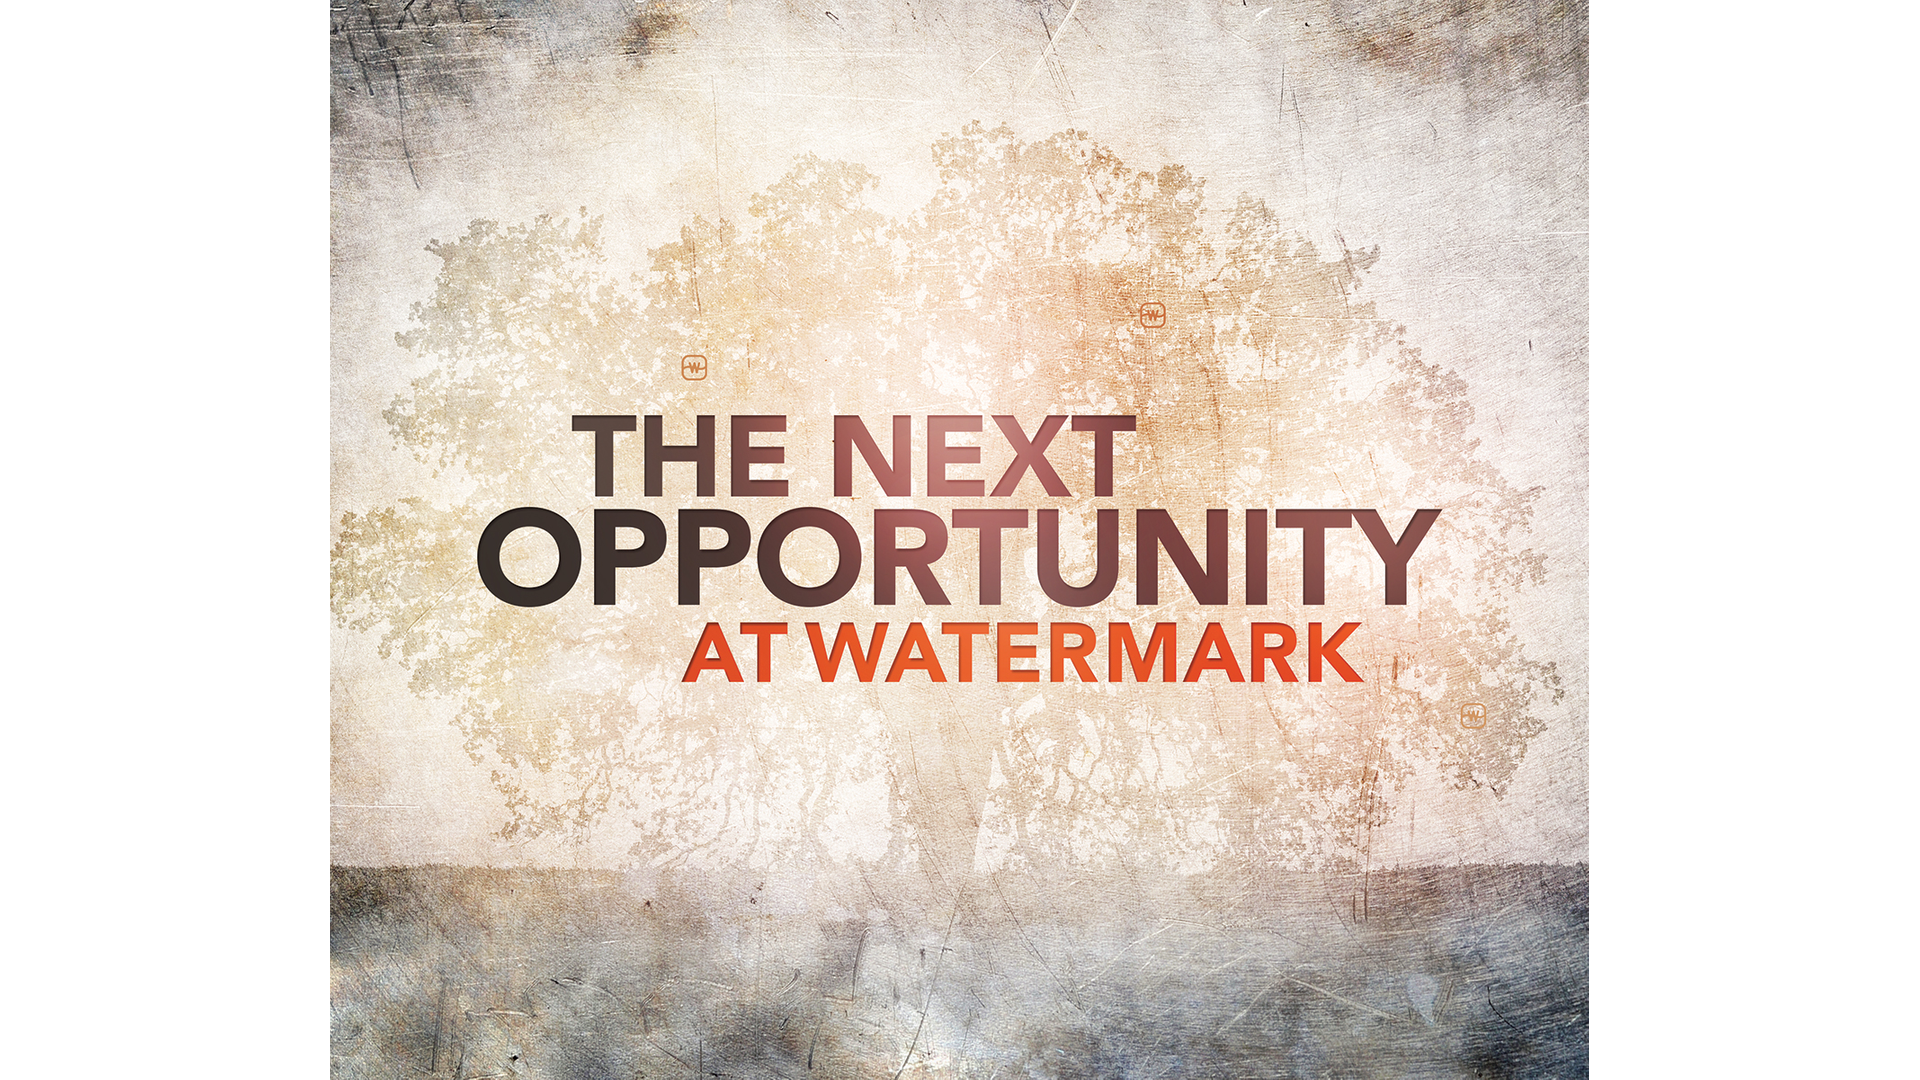 A Special Message From Todd Wagner Regarding Watermark's Plano Expansion Plans Hero Image